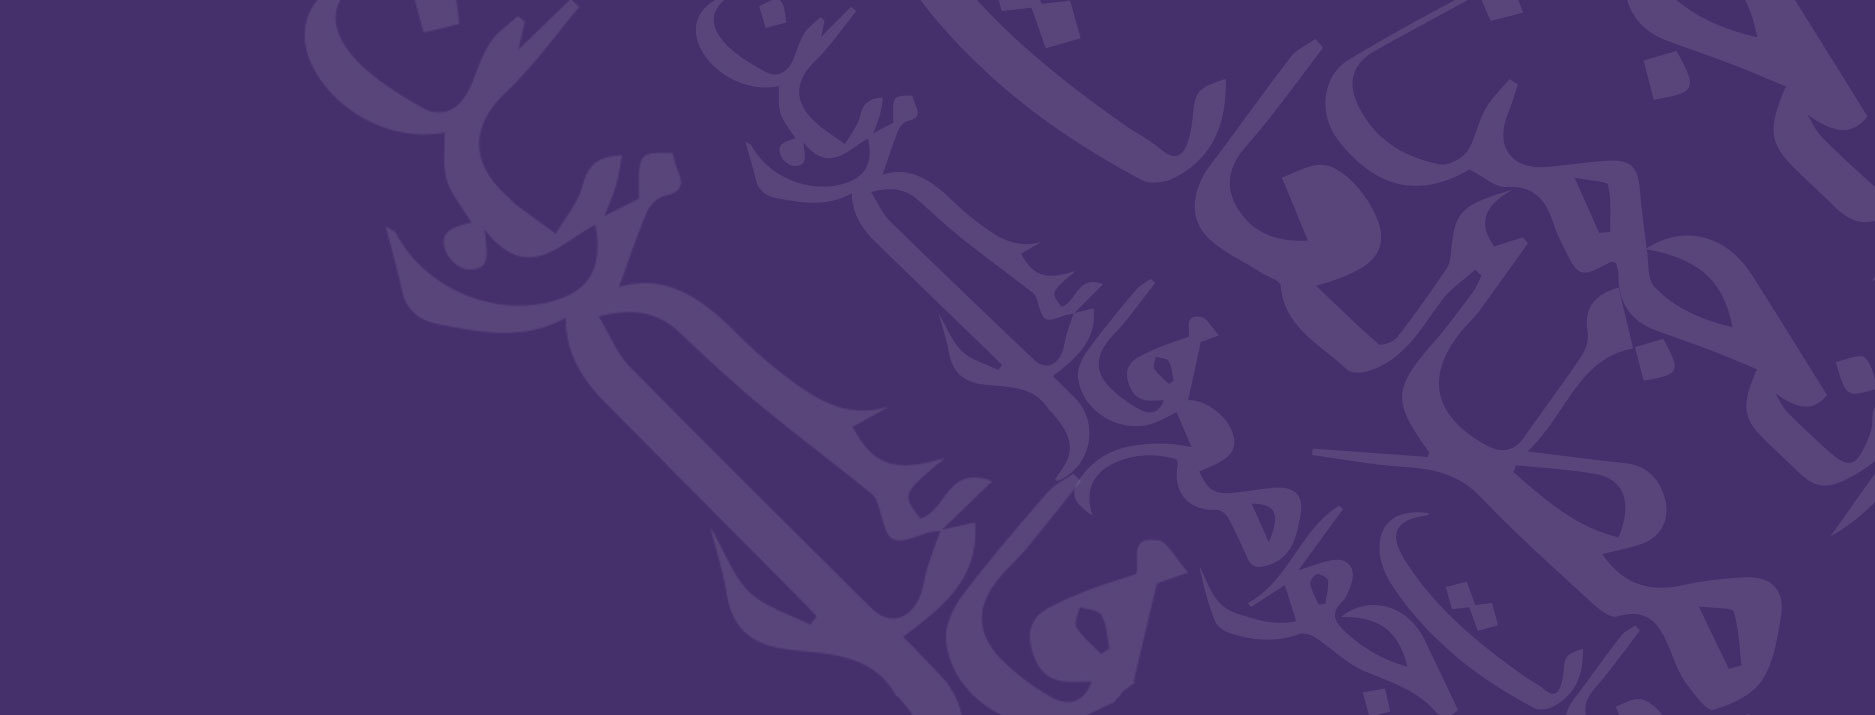 Journal | The Association for the Study of Persianate Societies